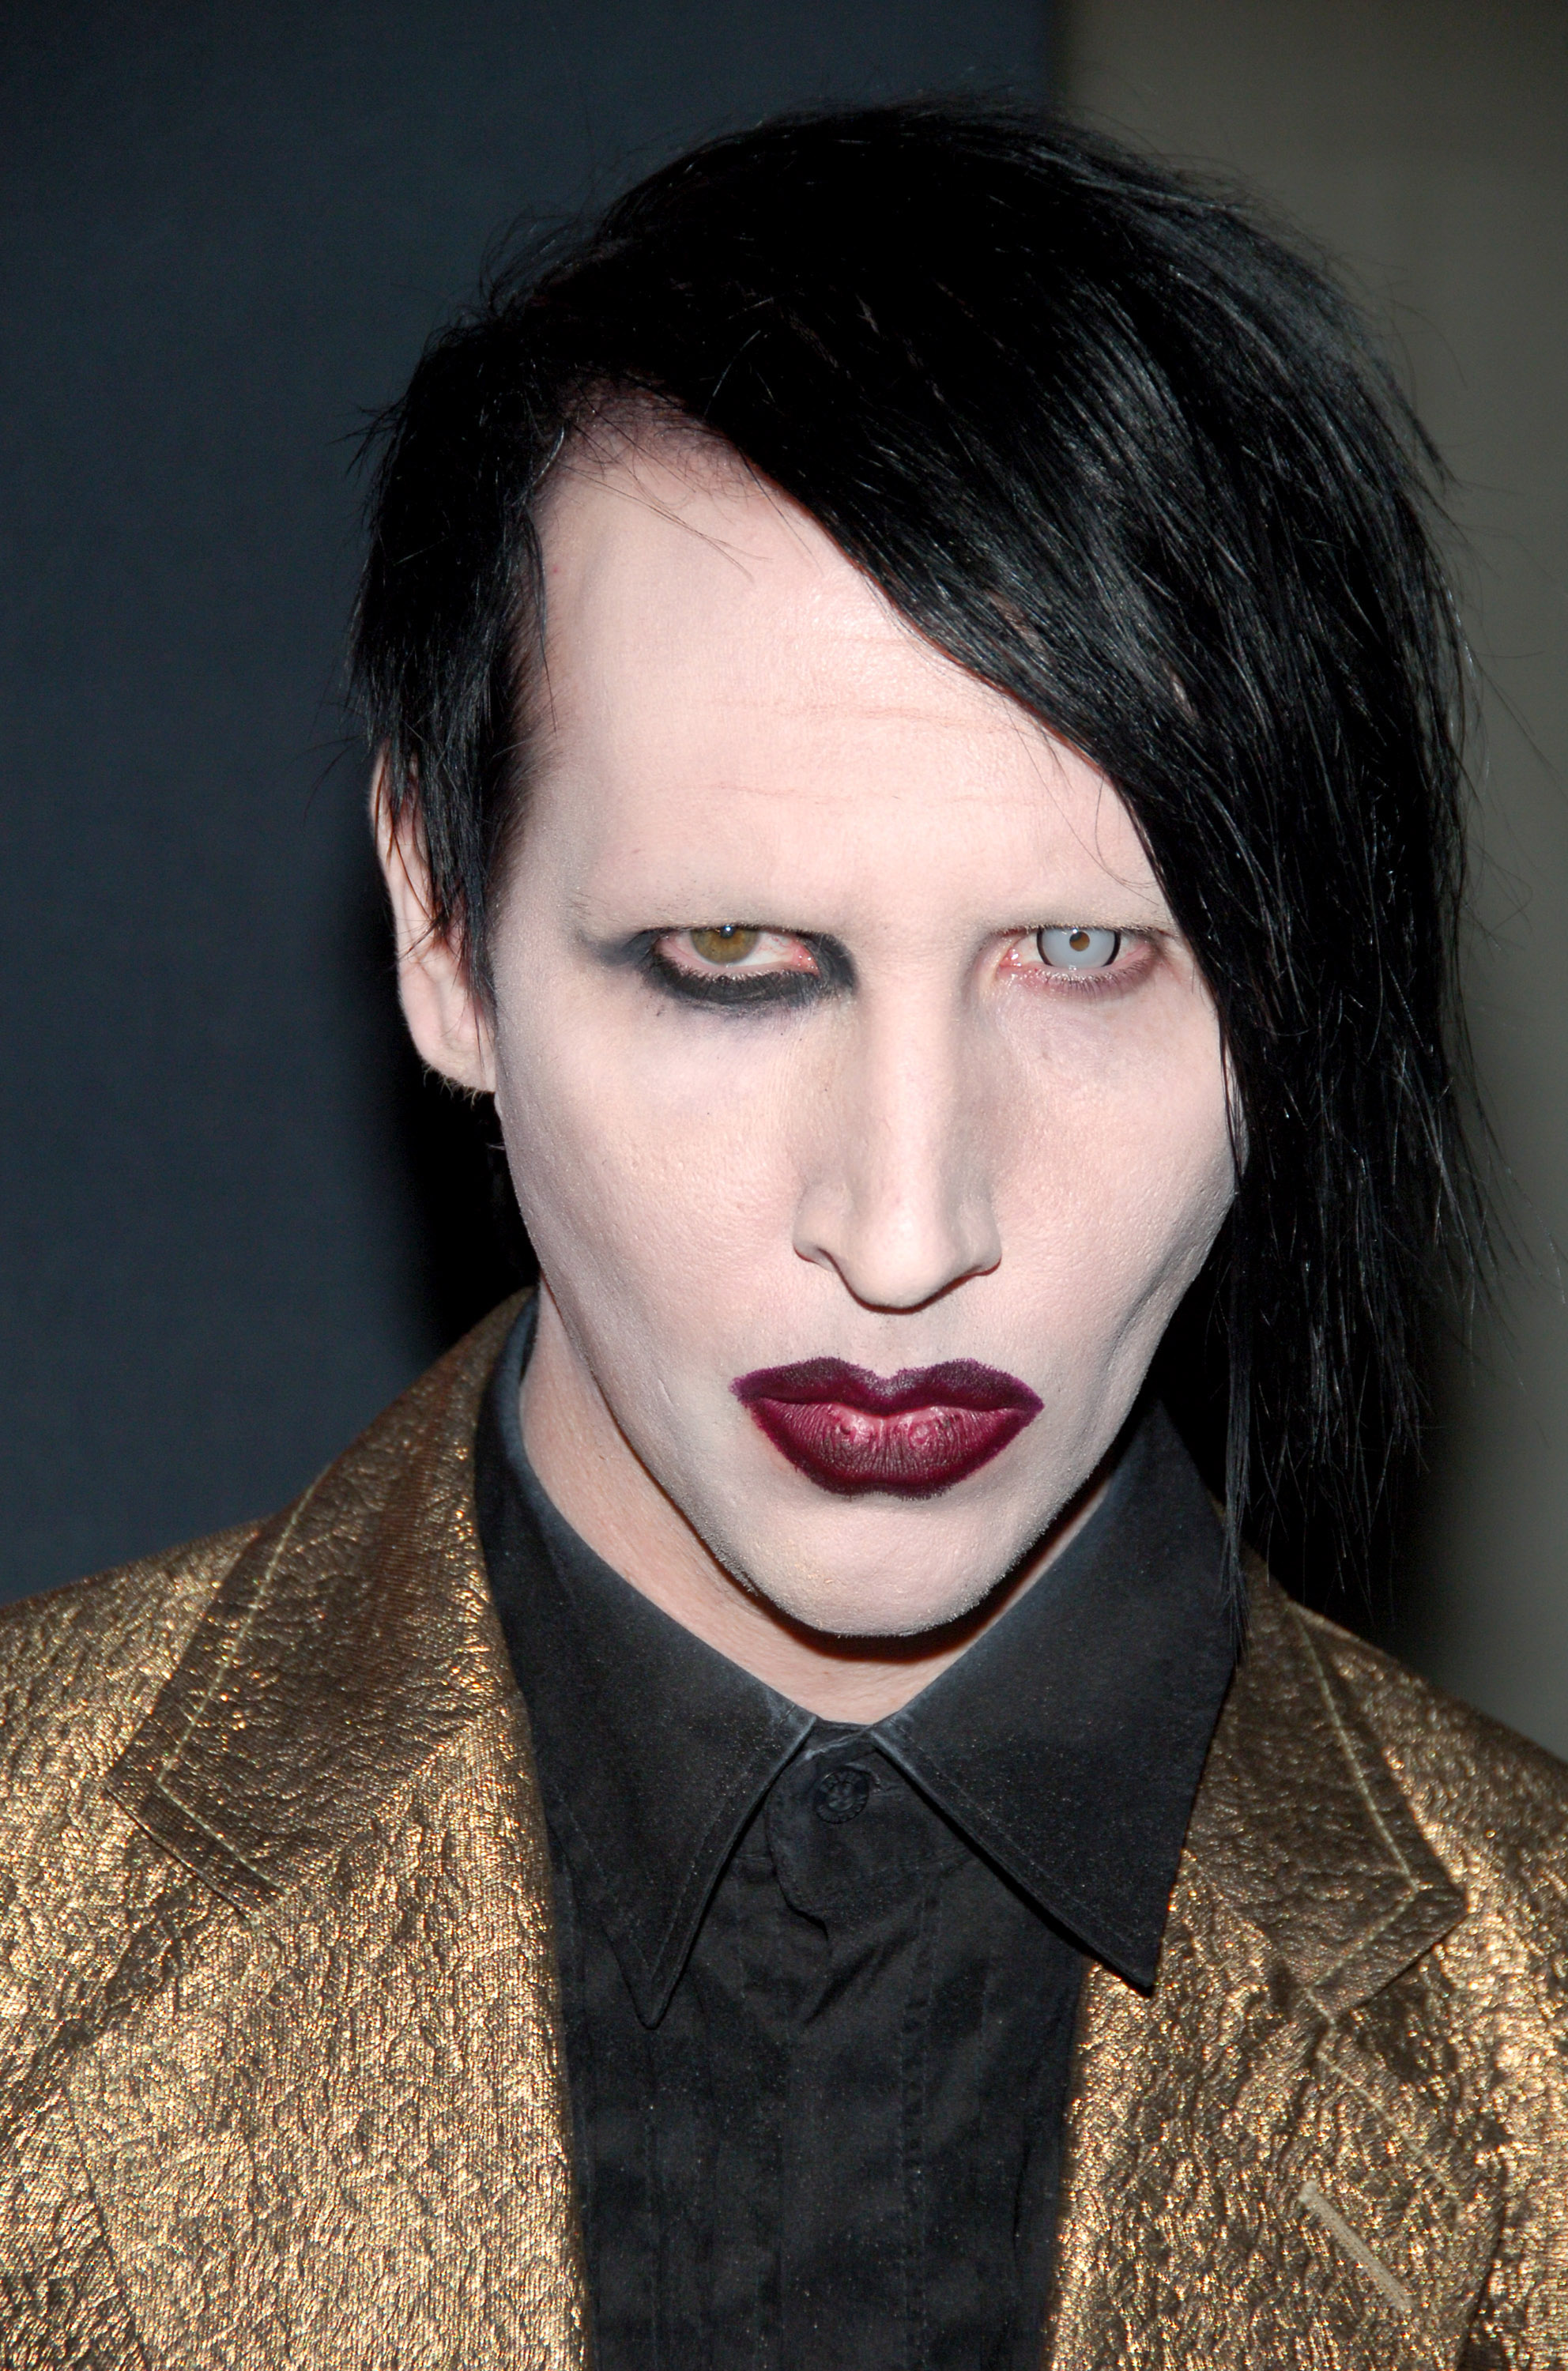 Marilyn Manson Says He Wants To Date A Nice Girl Nz Herald